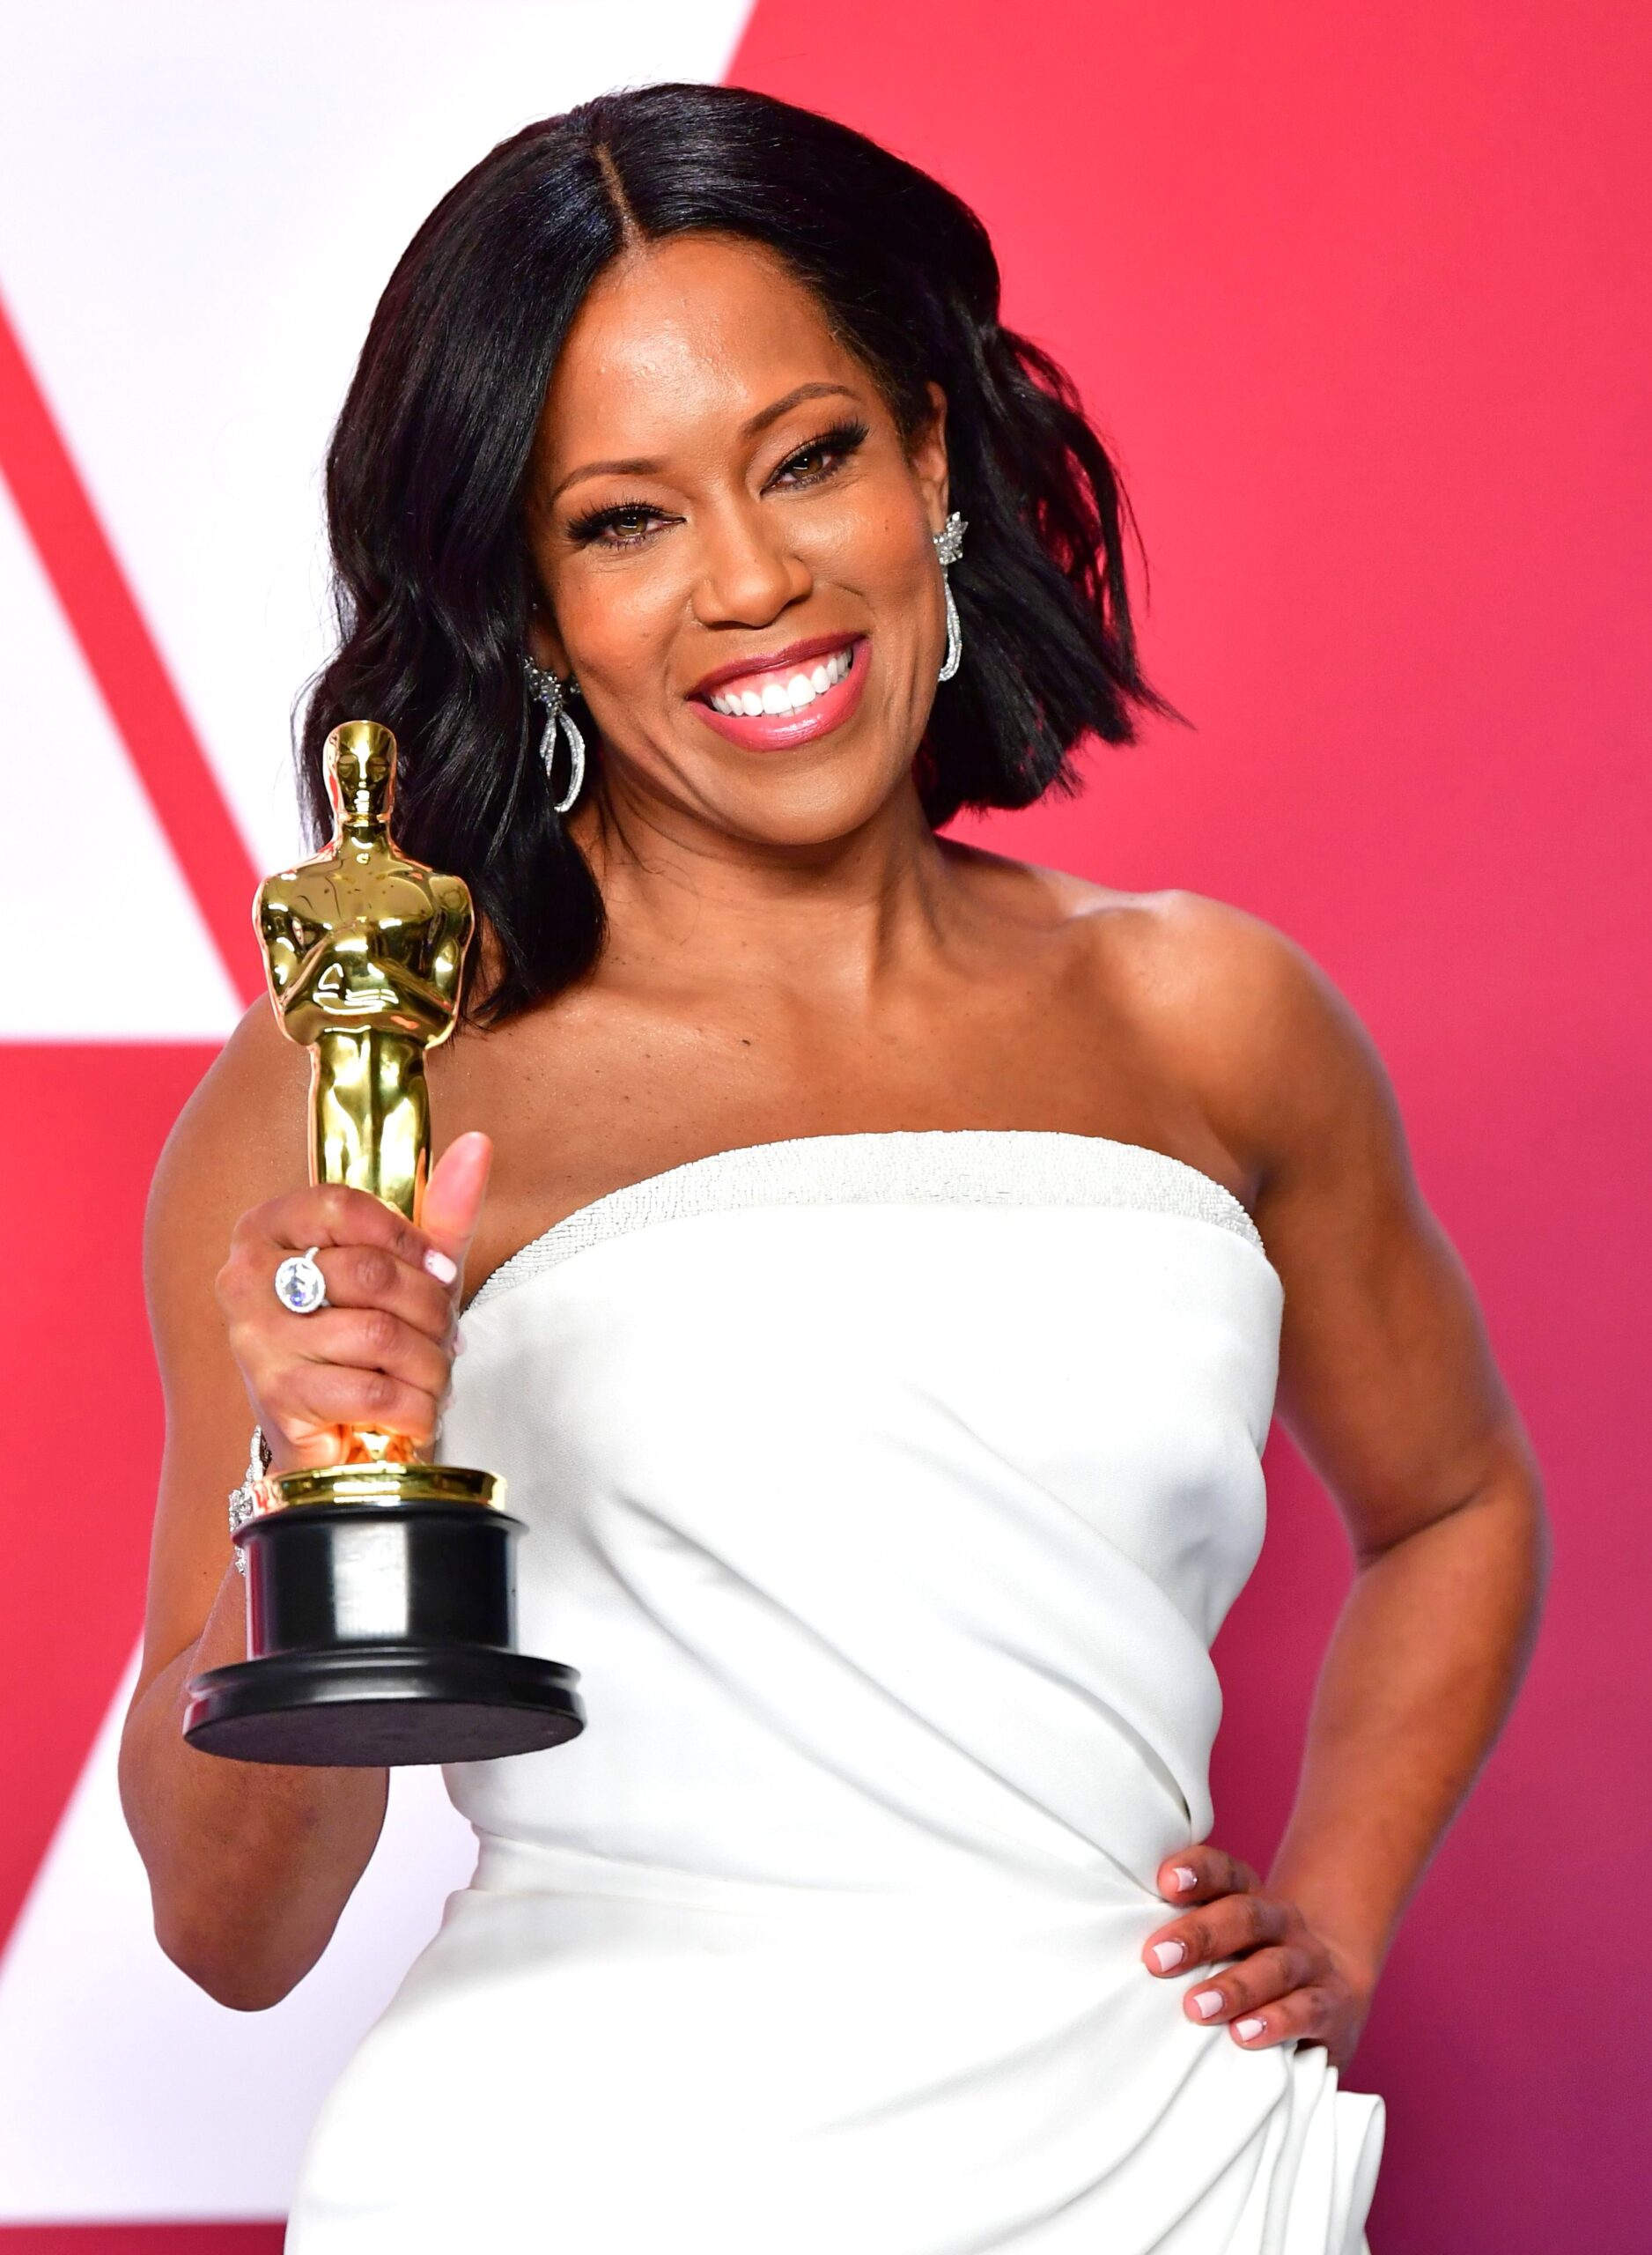 Regina King Phone number, Email Id, Fanmail, Instagram, Tiktok, and Contact Details